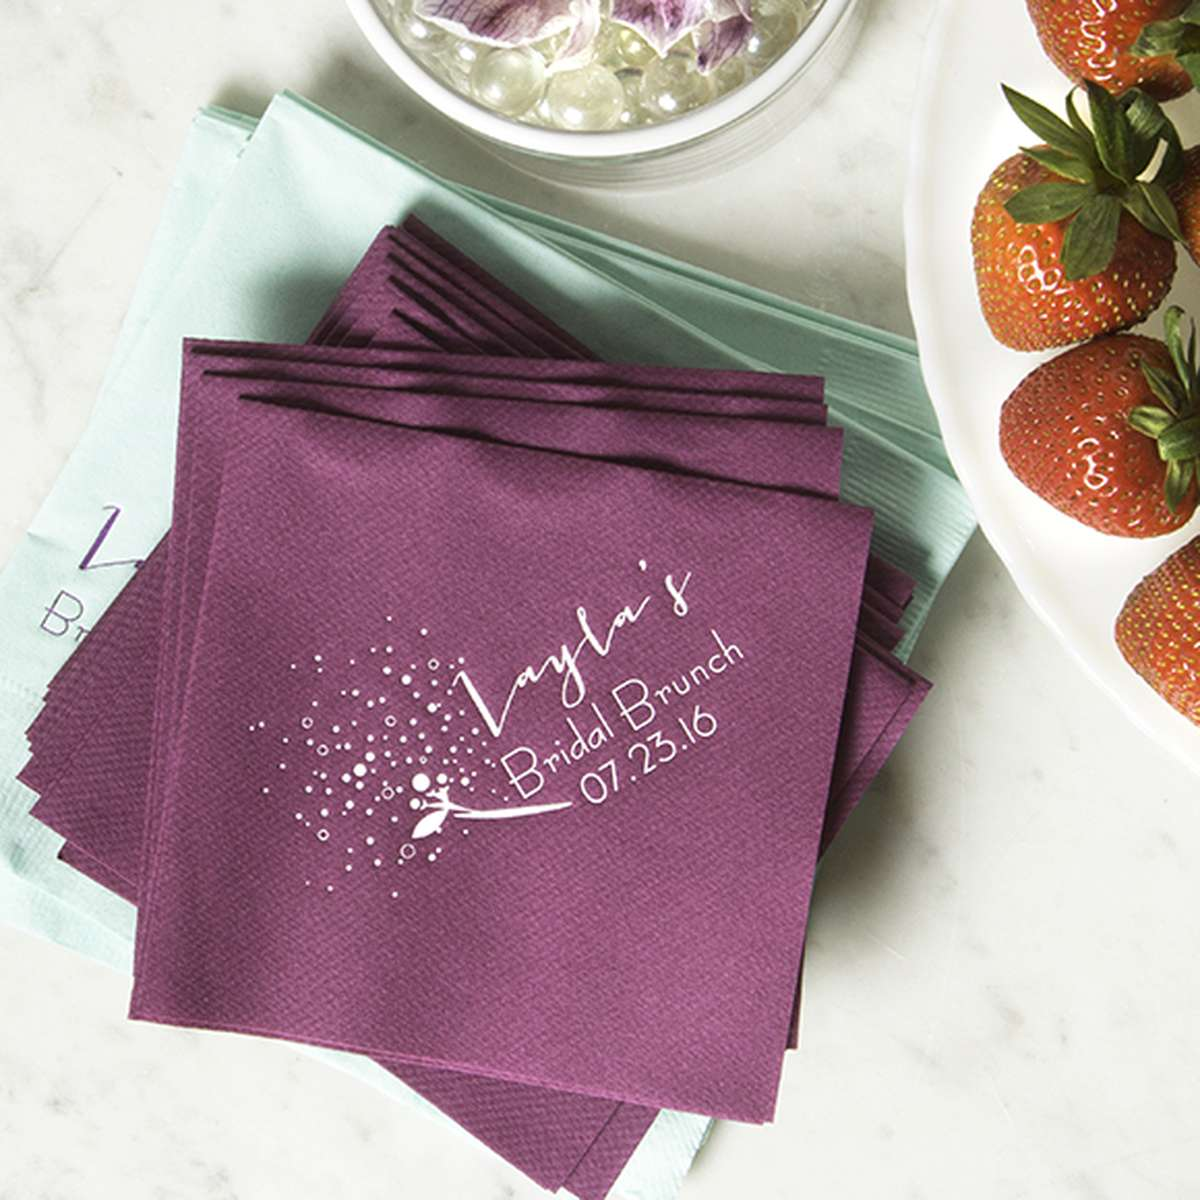 Linen Like Personalized Cocktail Napkins